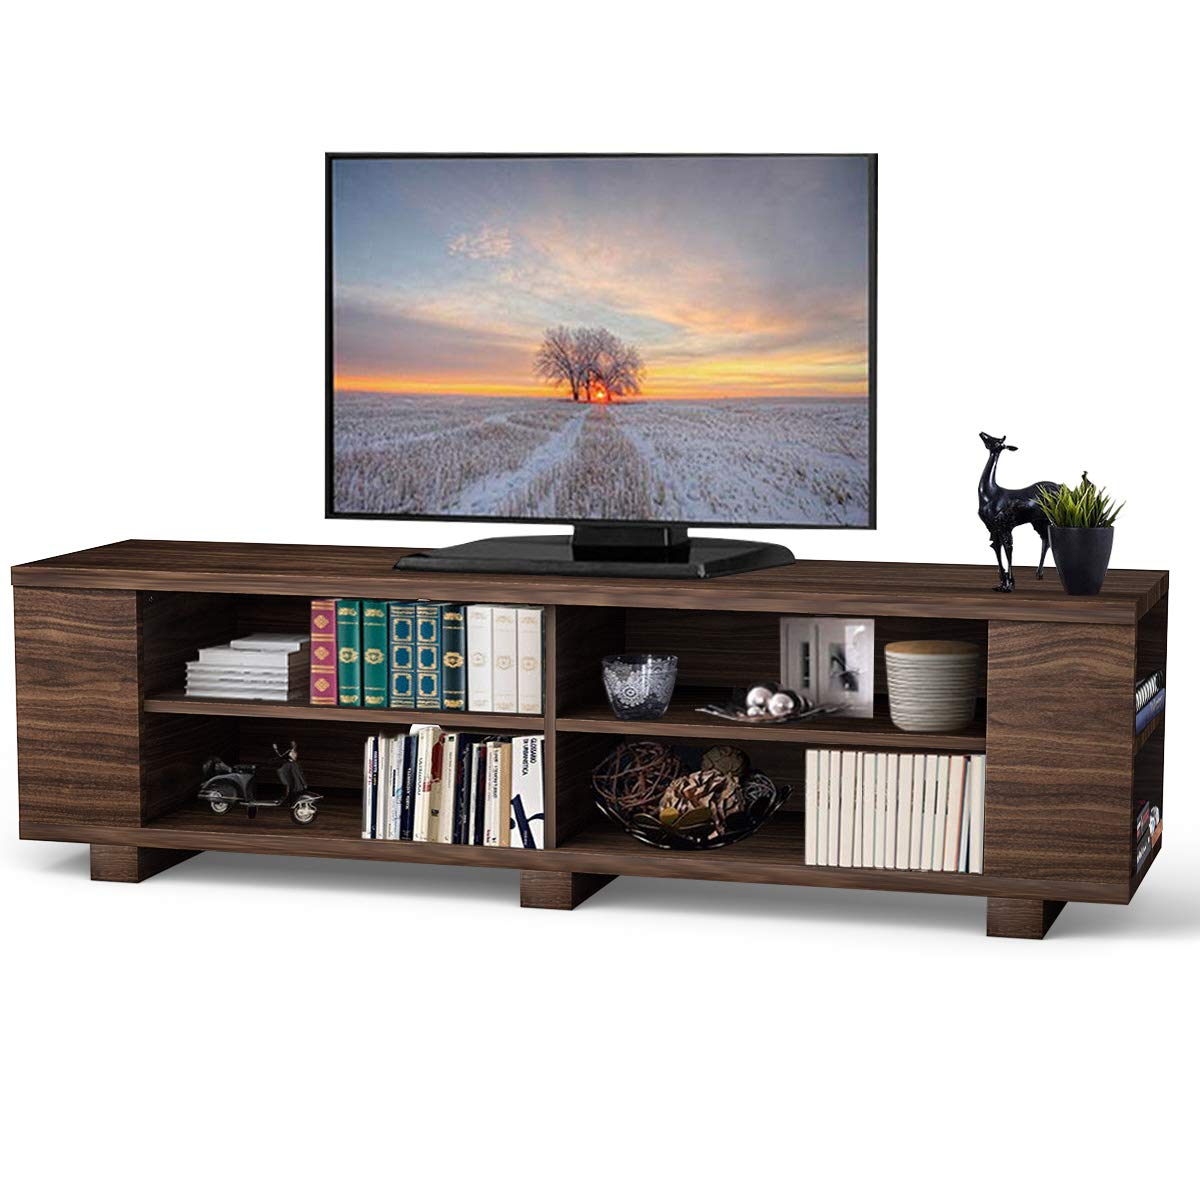 Tangkula TV Stand, Modern Wood Storage Console Entertainment Center for TV up to 60'', Home Living Room Furniture with 8 Open Storage Shelves (Coffee) by Tangkula